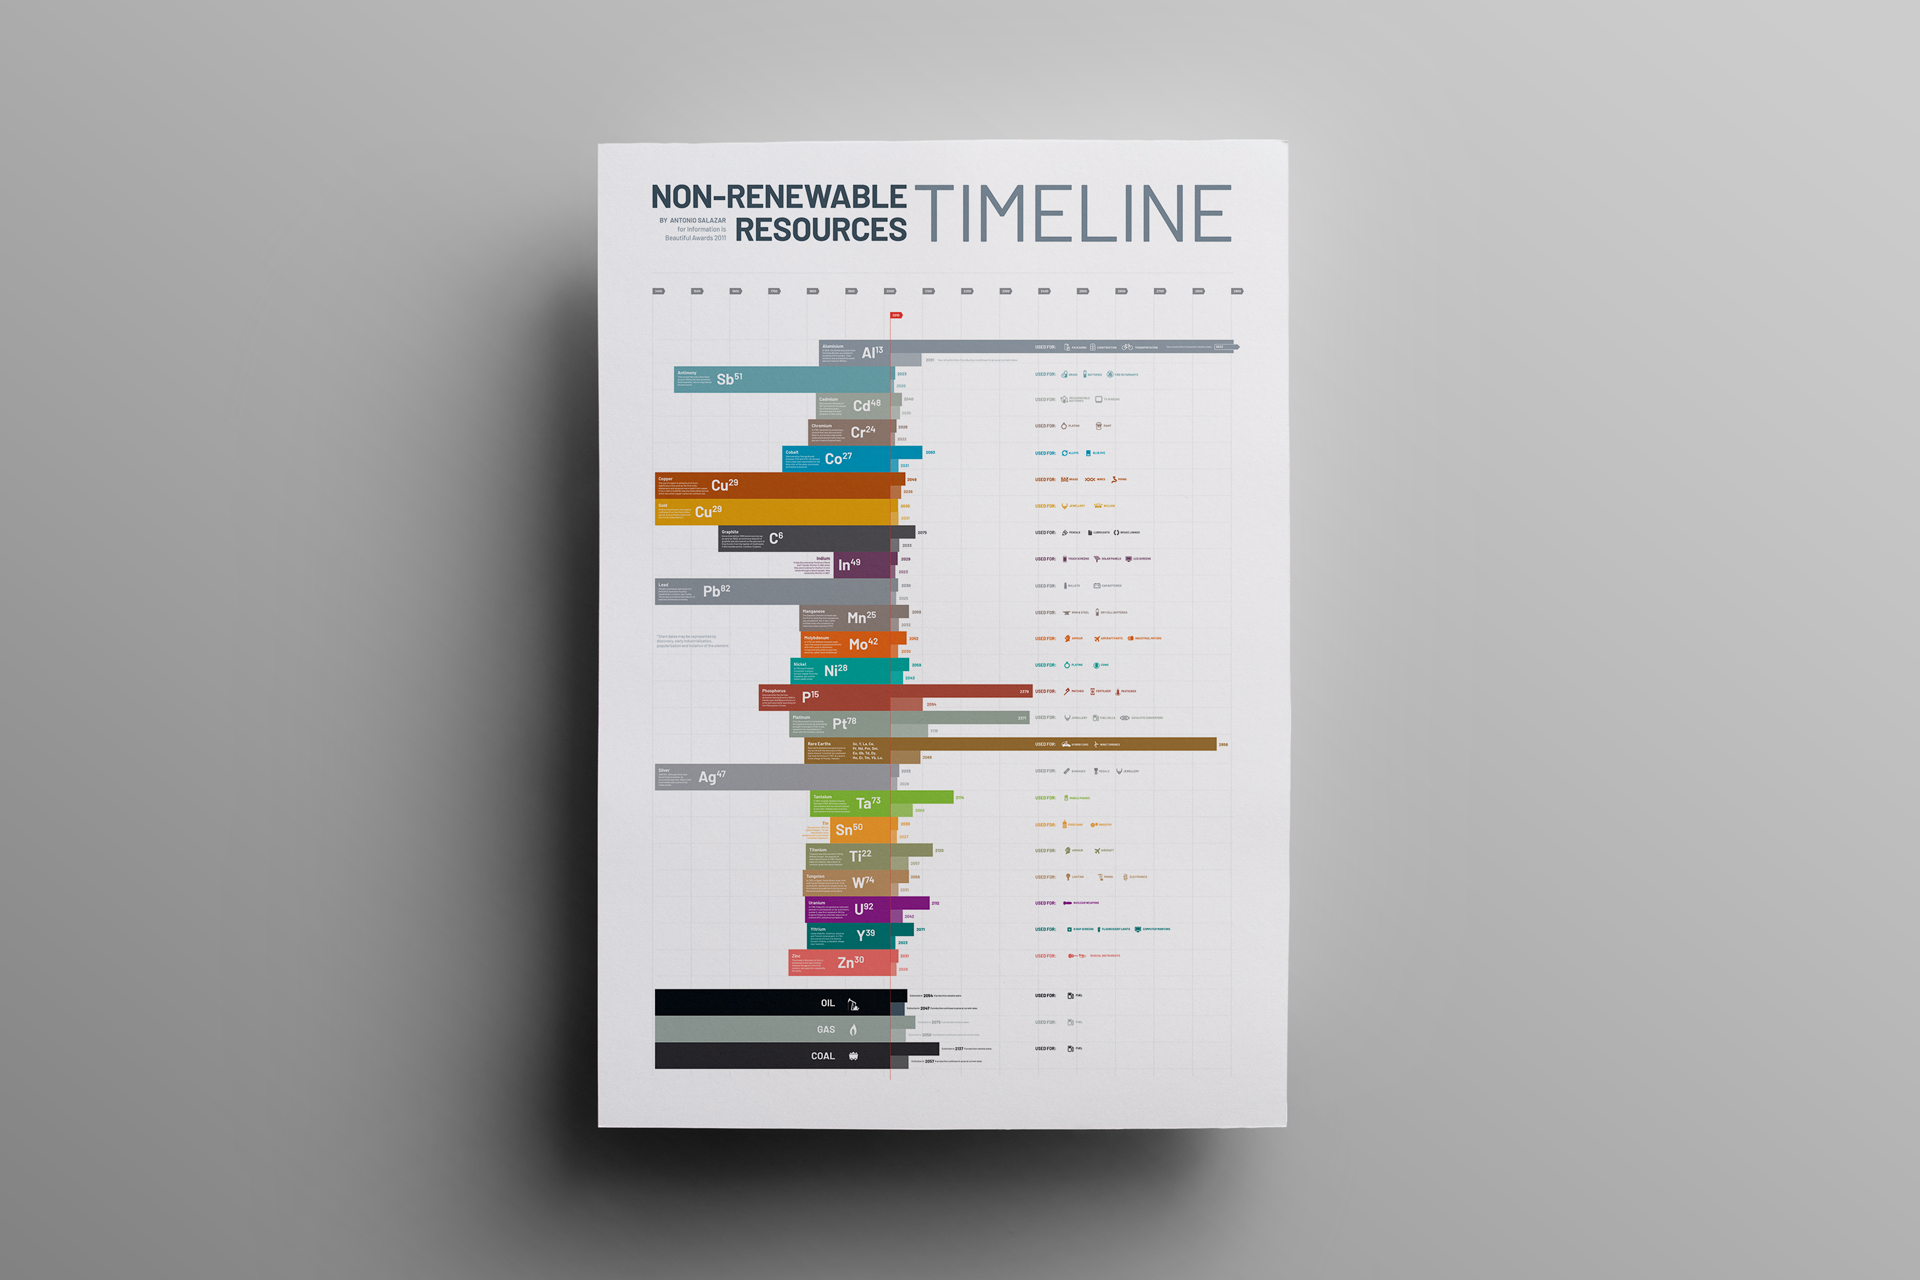 Non-Renewable Resources Timeline / Infography